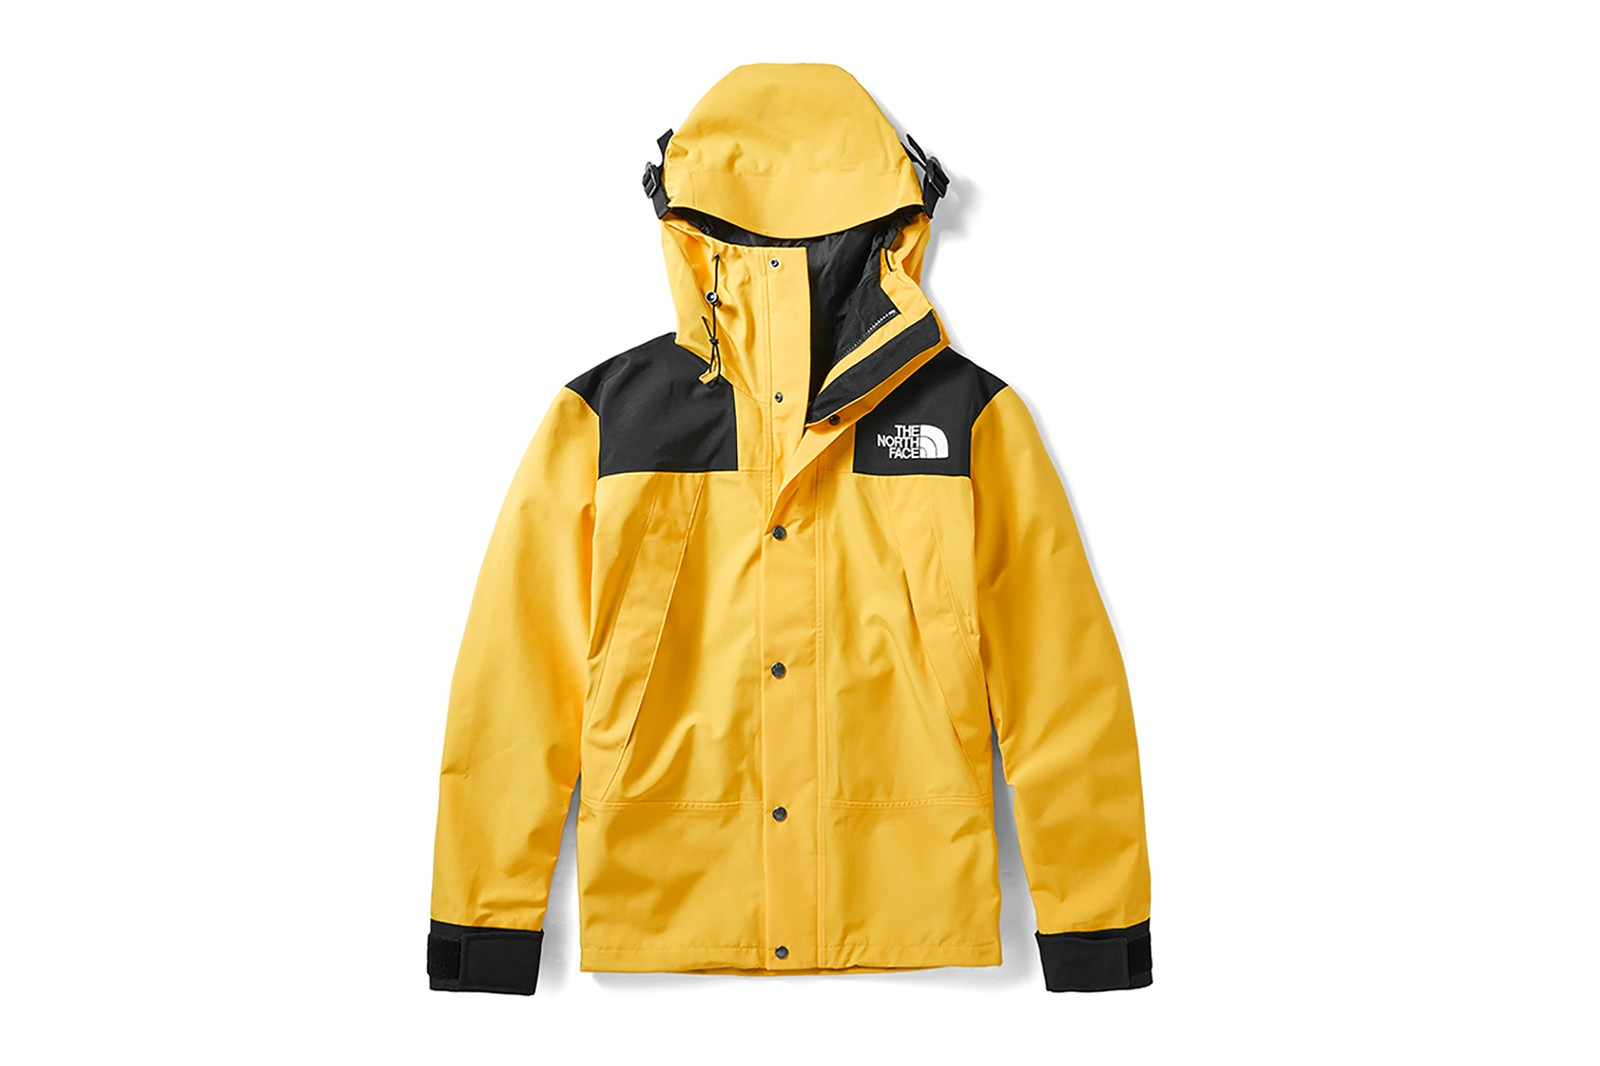 The North Face Her Exploration 1990 Mountain Jackets Futurelight